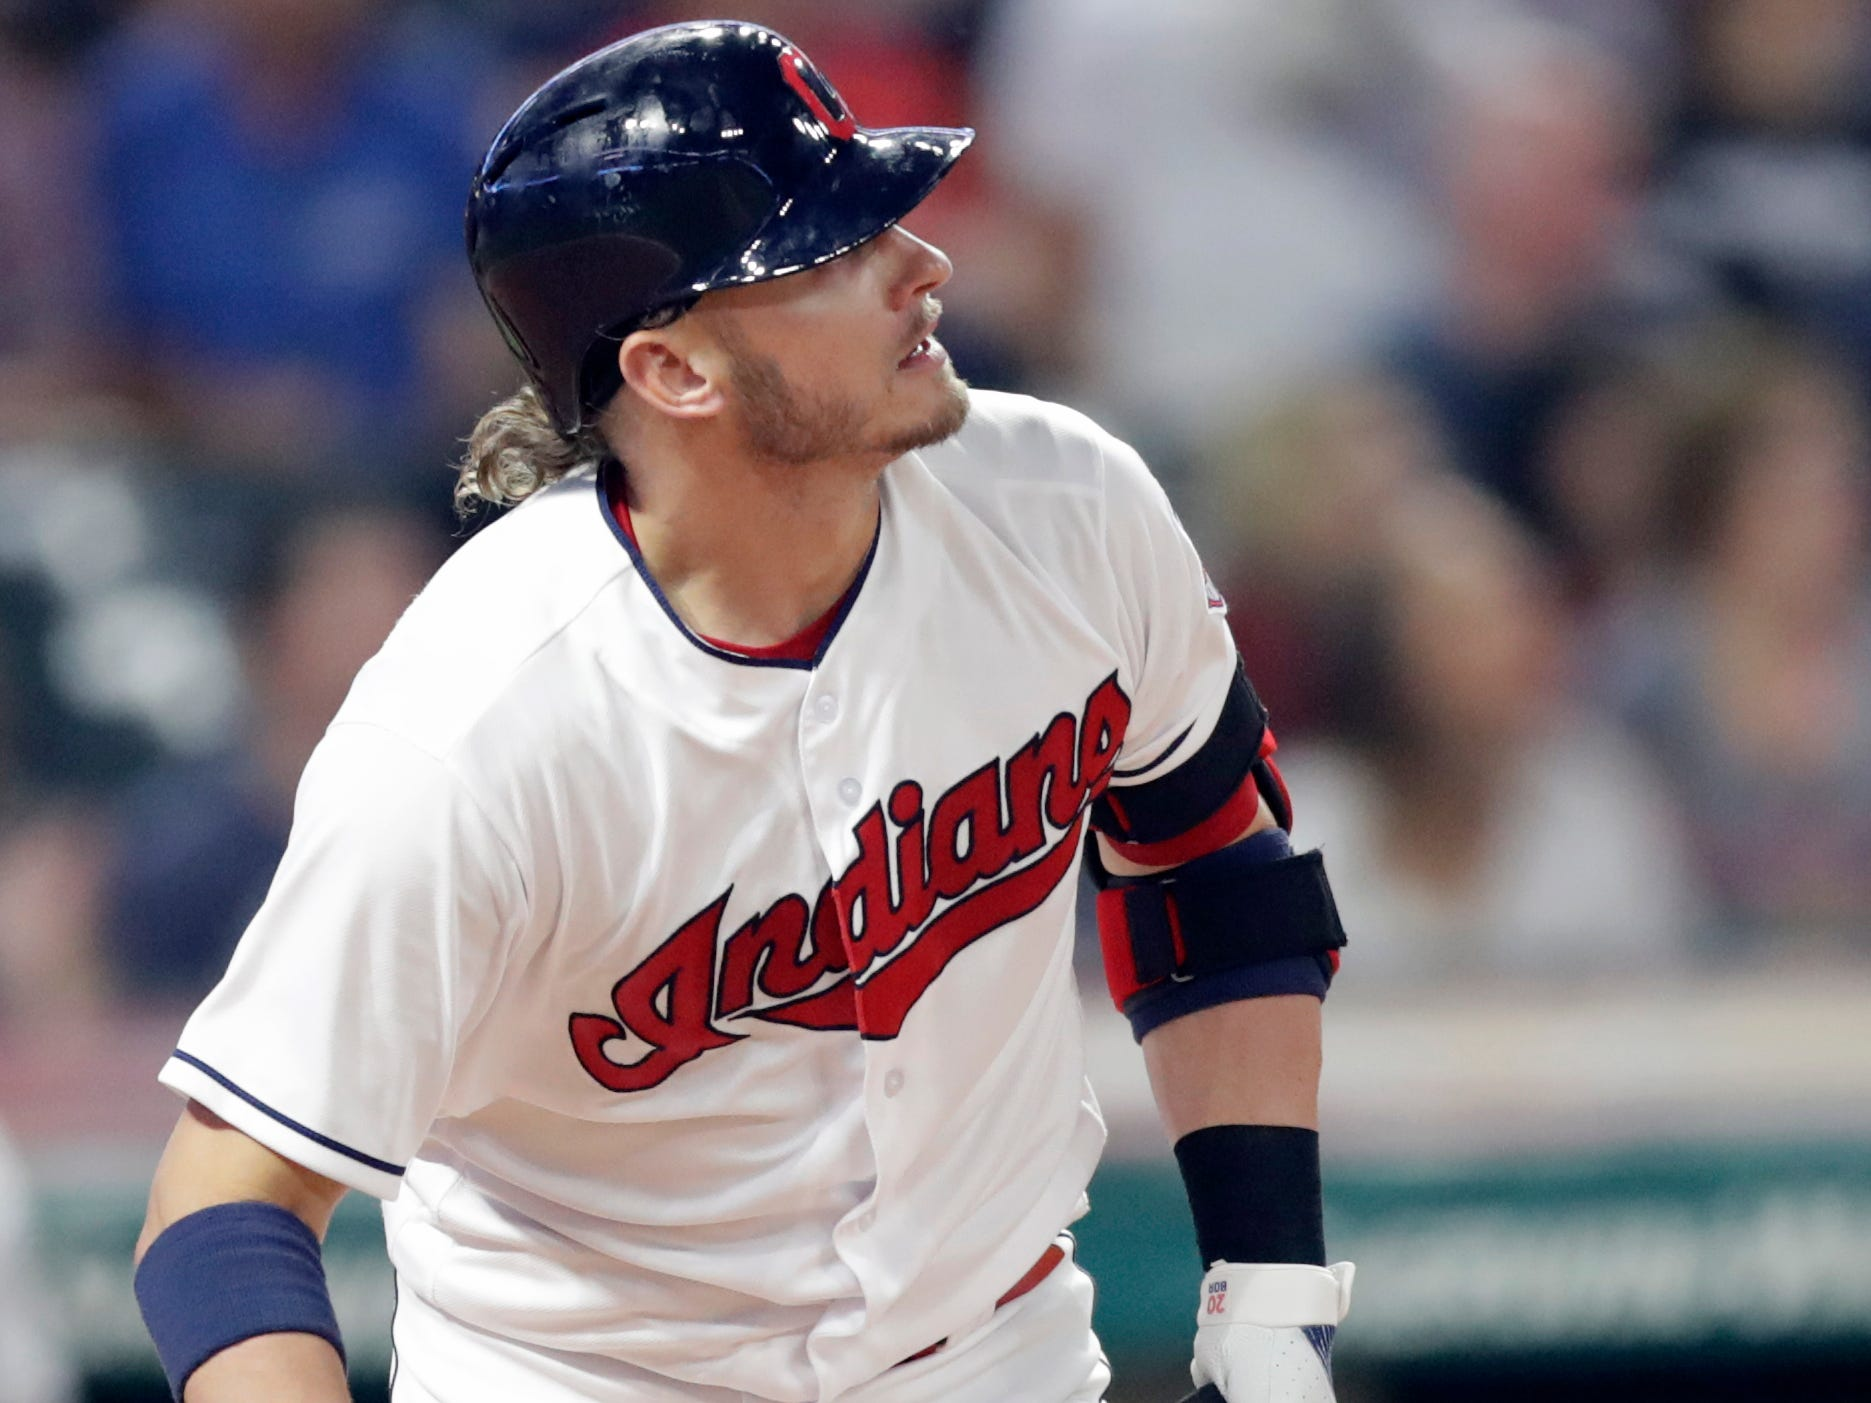 18. Josh Donaldson, 3B, 33: He had an injury-marred season at the worst possible time, but finishing strong, reminding potential suitors of the guy who posted a .946 OPS from 2015-17. Prediction: Cardinals, three years, $60 million. UPDATE: Braves, one year, $23 million.